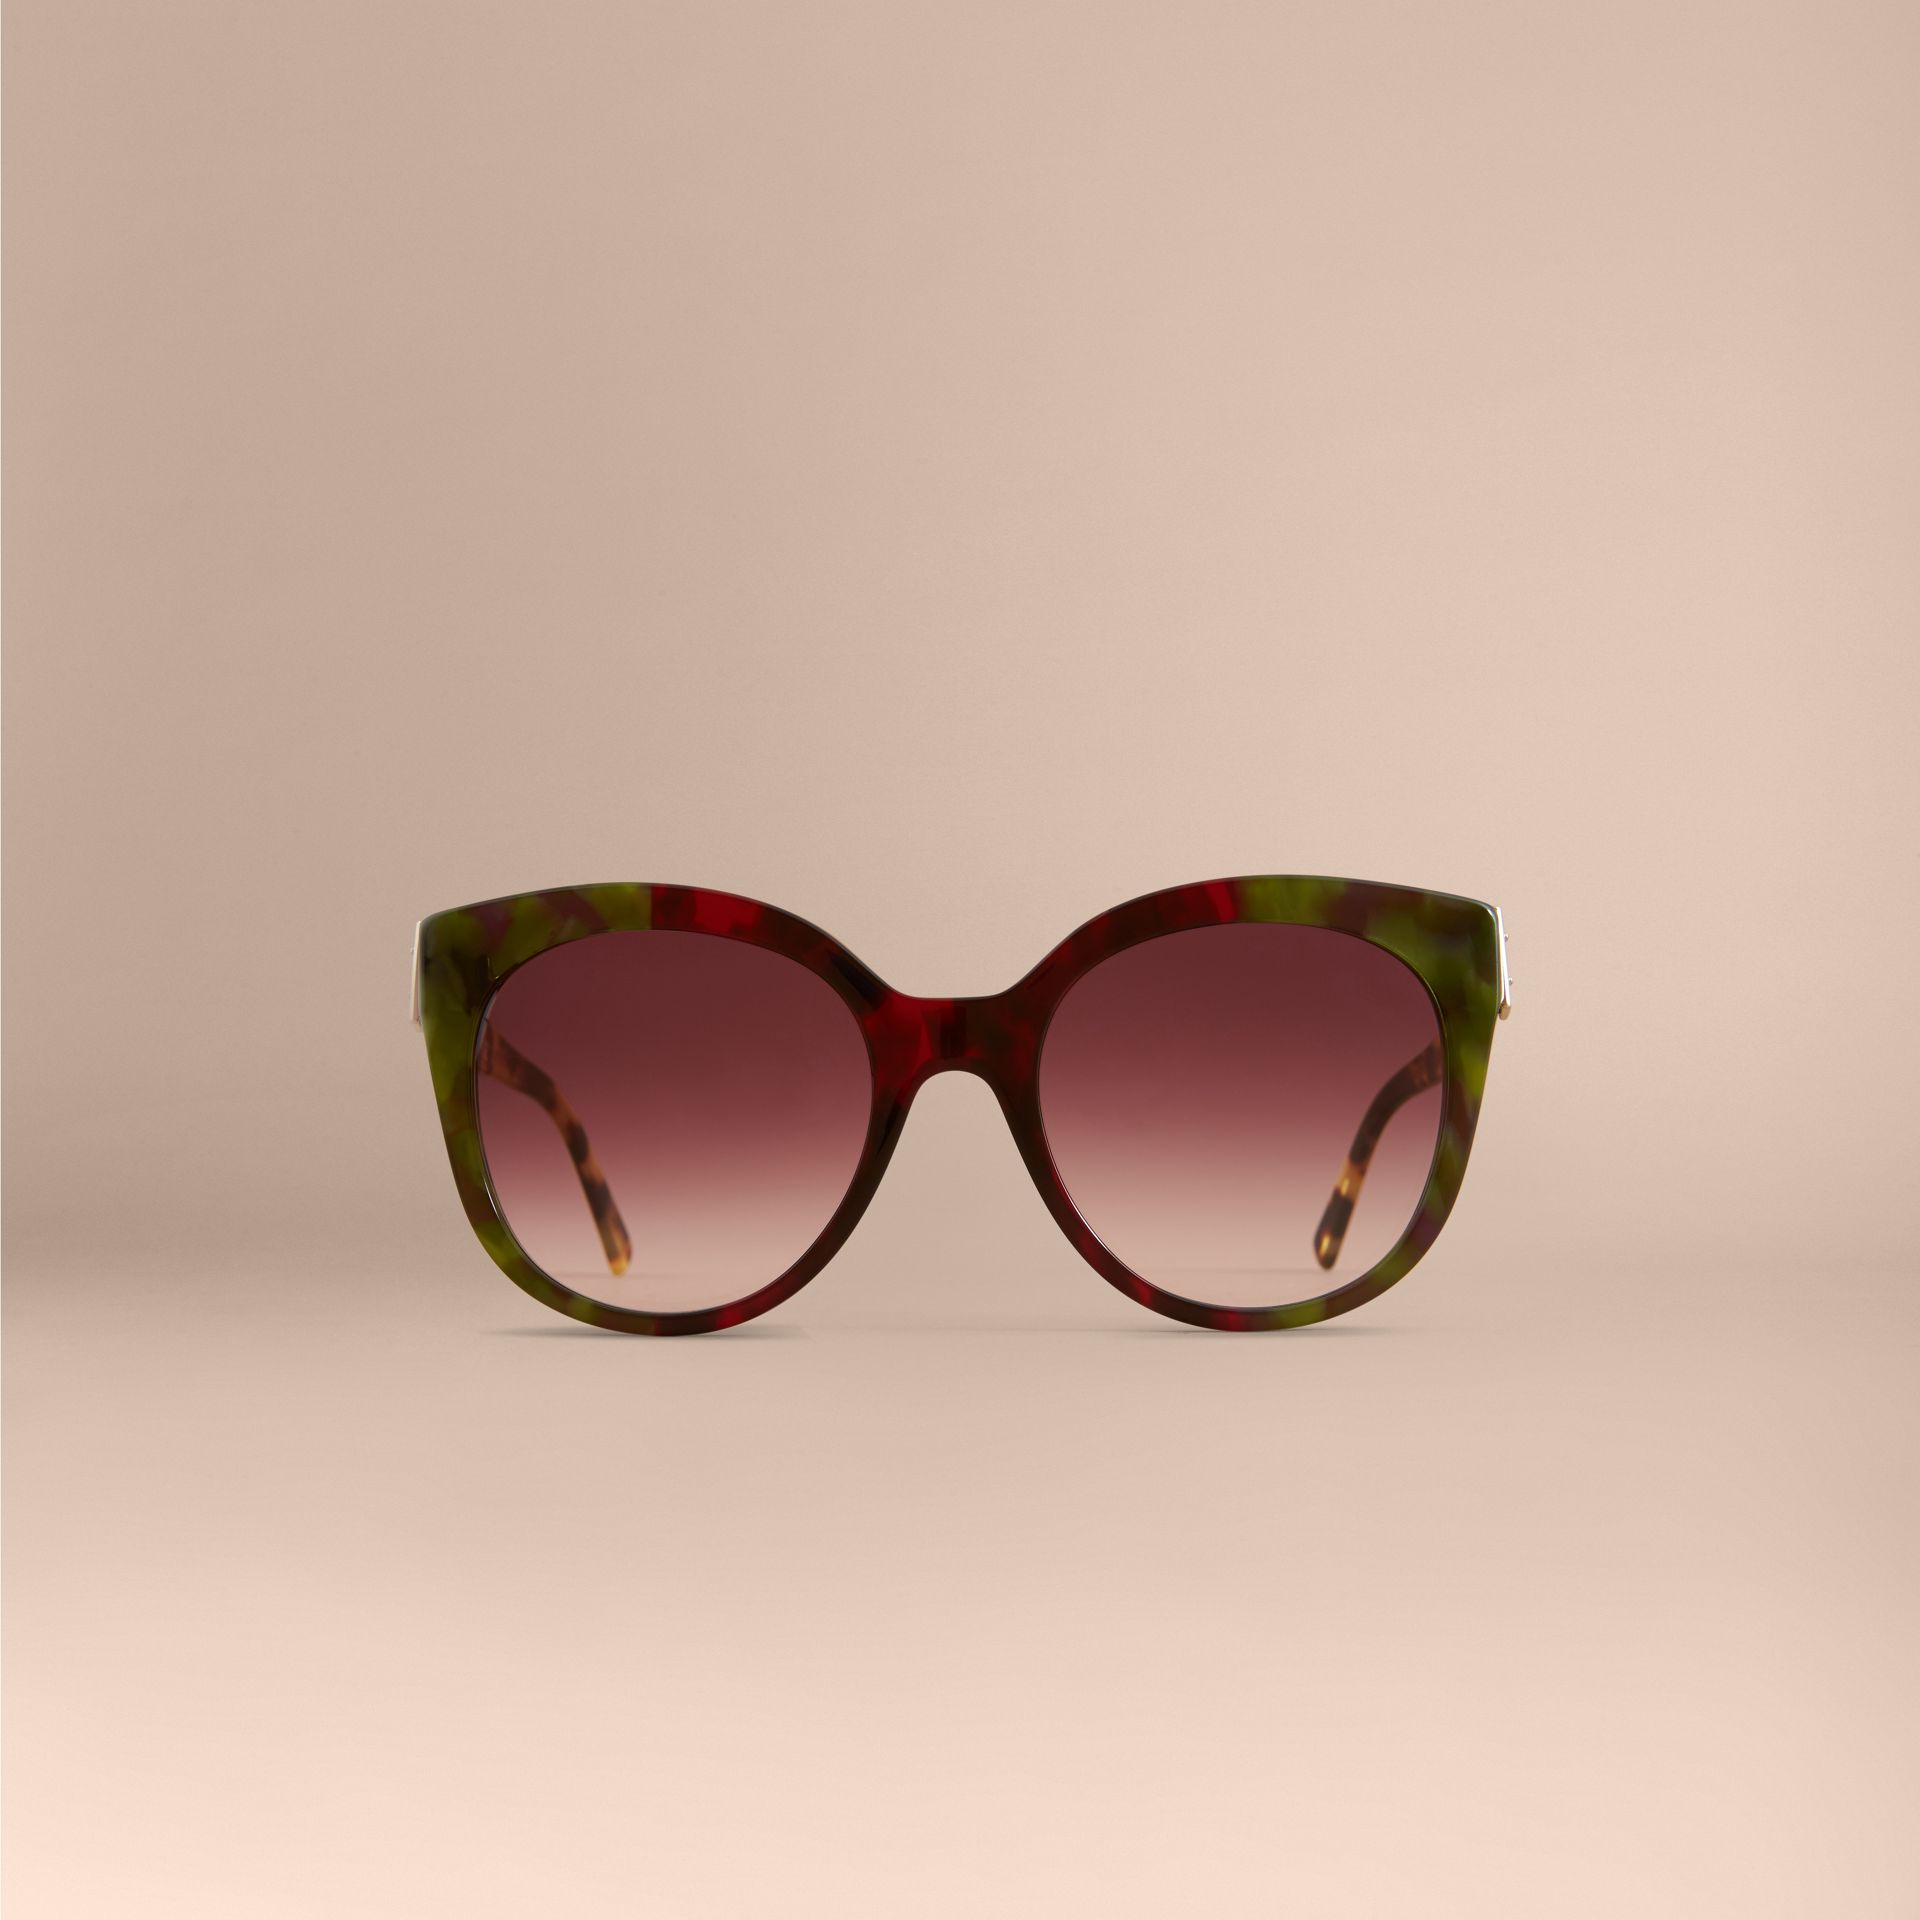 Buckle Detail Cat-eye Frame Sunglasses in Cardinal Red - Women | Burberry Singapore - gallery image 2